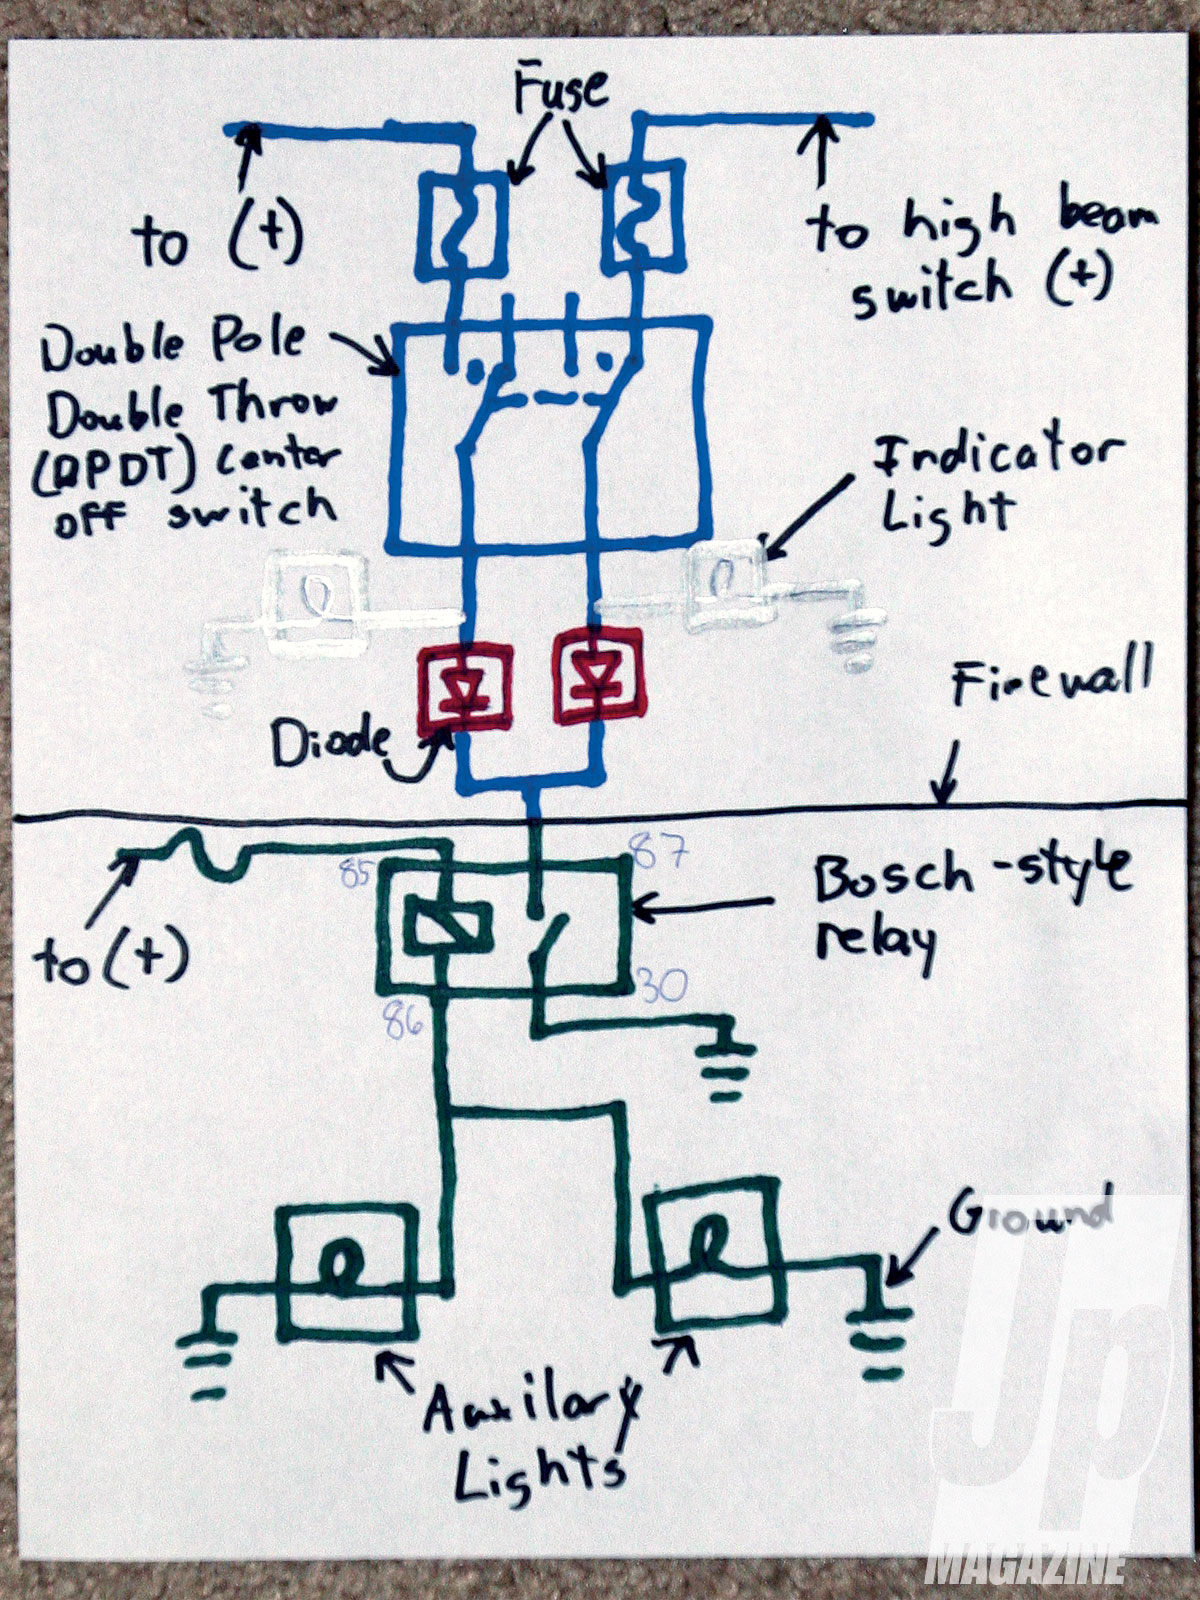 i figured out the wiring diagram for the eagle eye wiring harness154 1011 november 2010 randys [ 1200 x 1600 Pixel ]